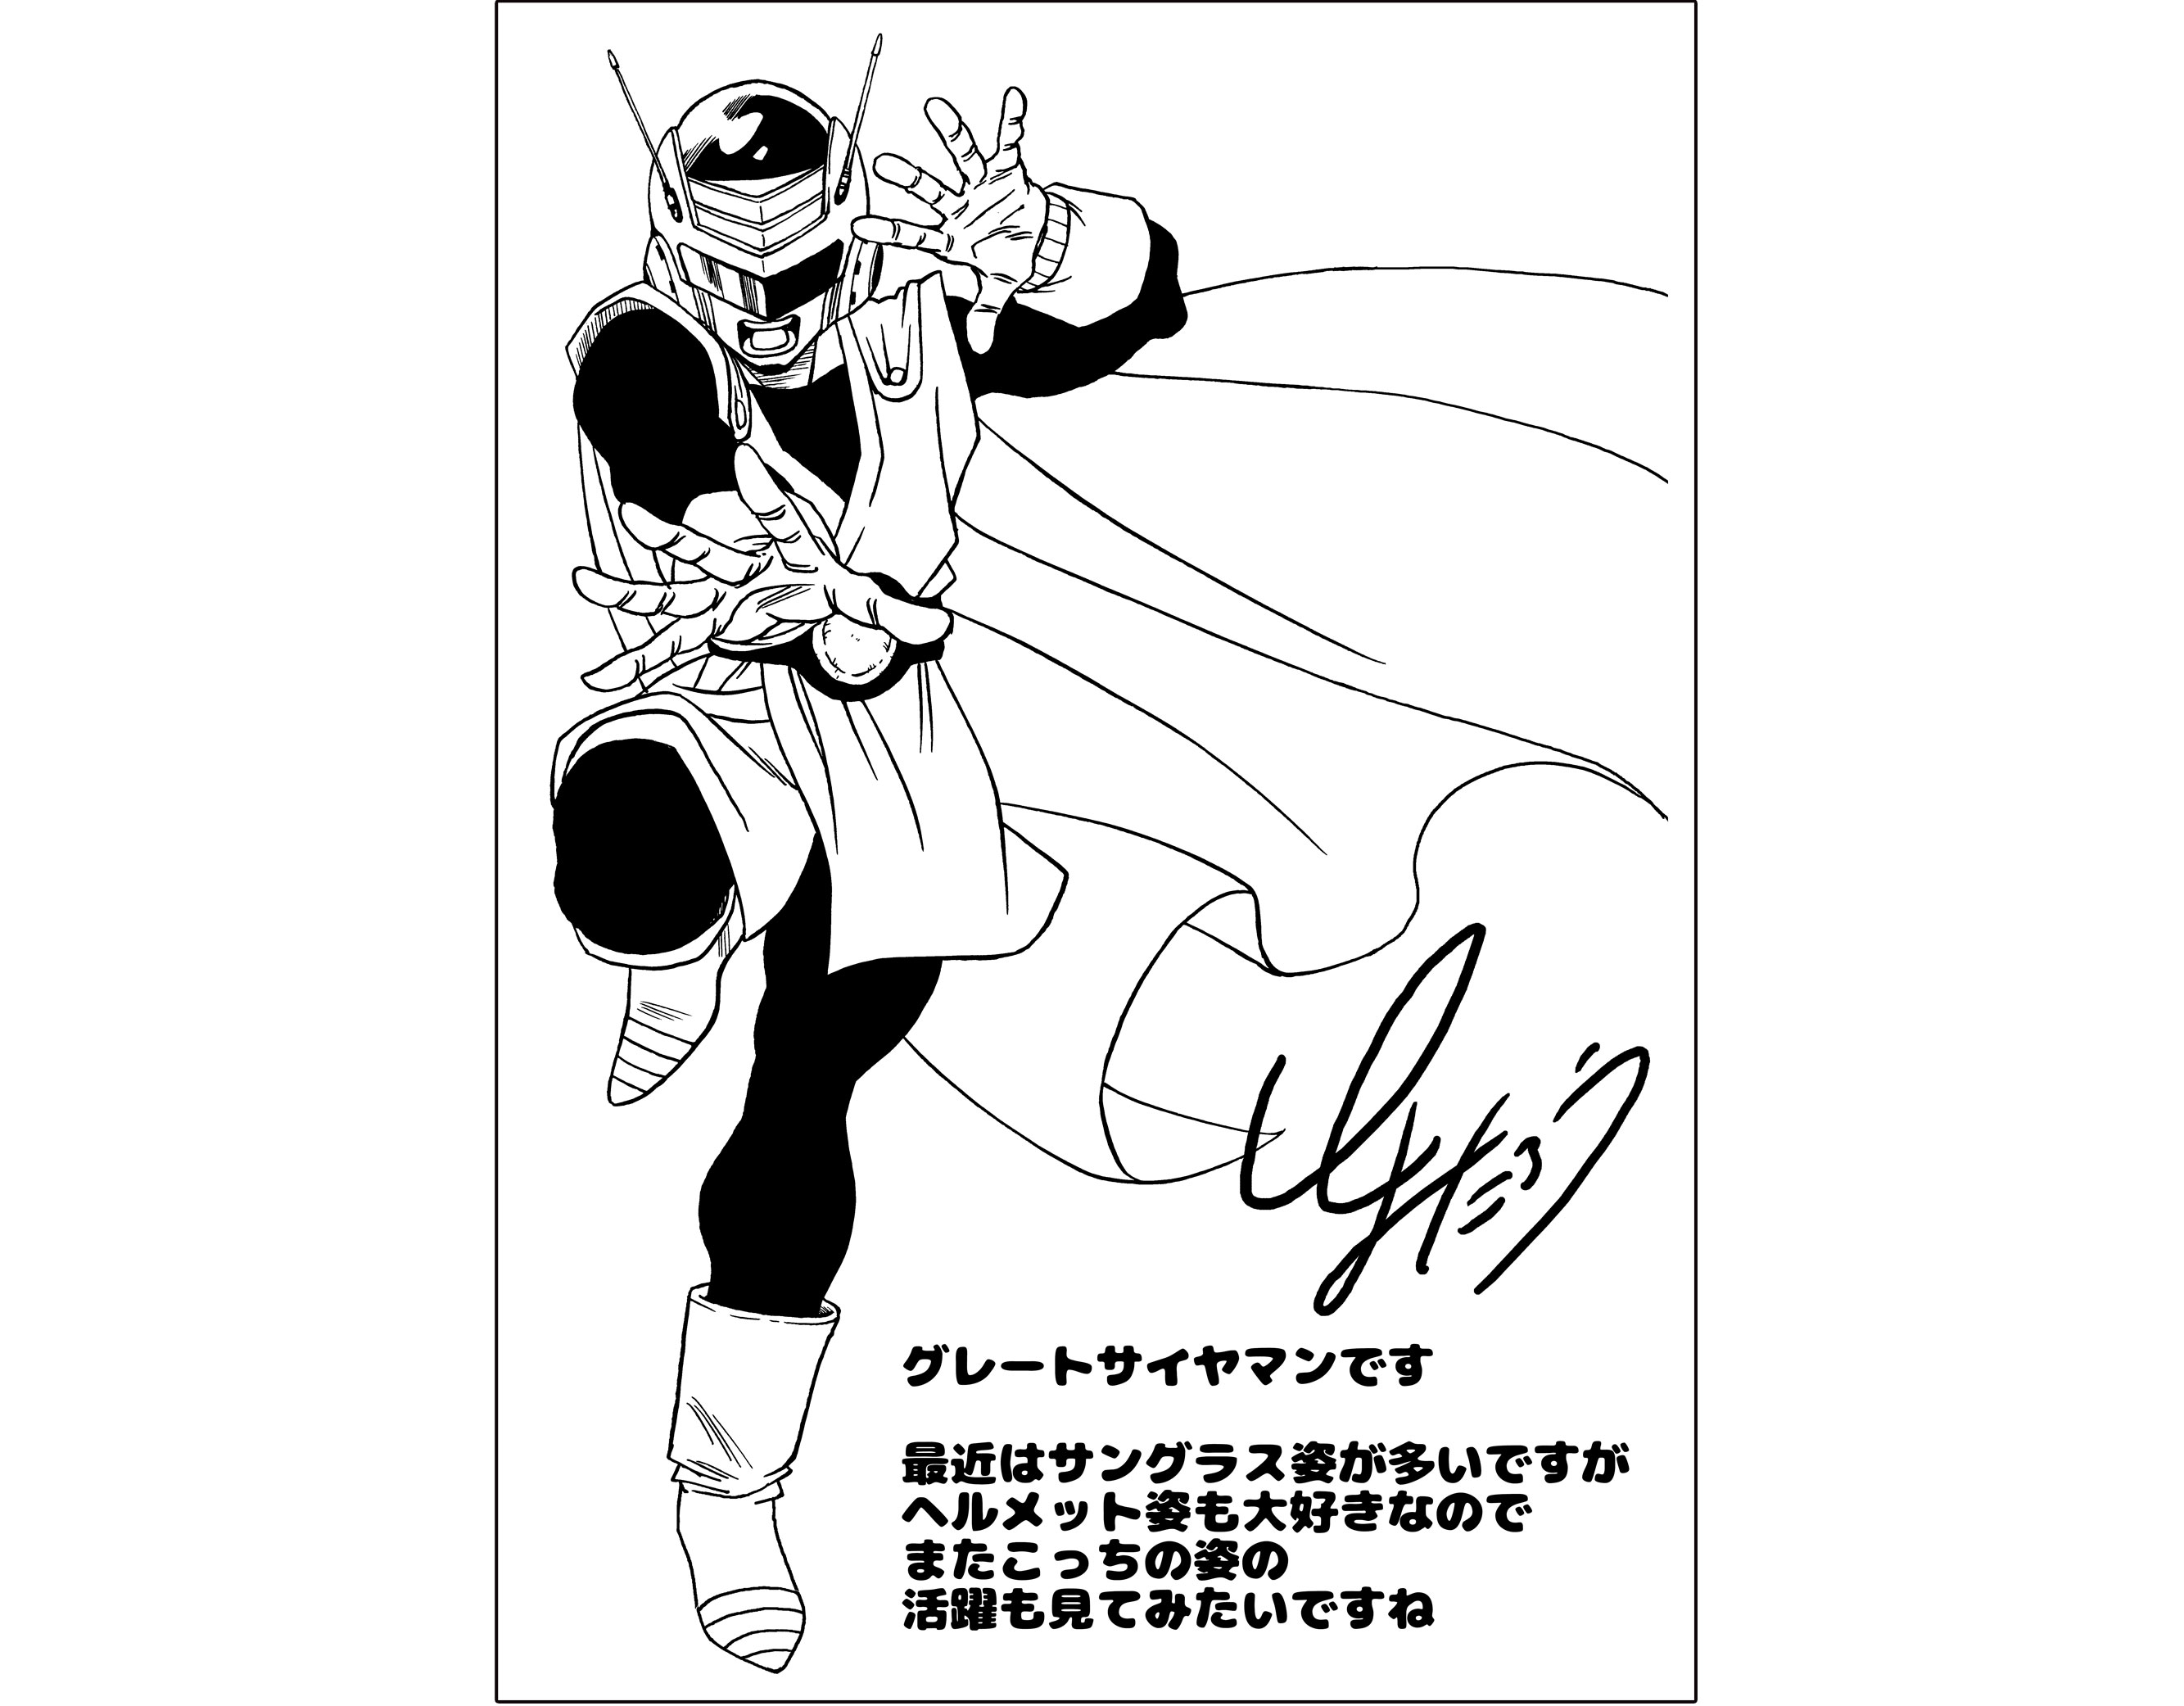 L'artwork de Toyotaro d'avril 2019 pour le site officiel de Dragon Ball – Great Saiyaman